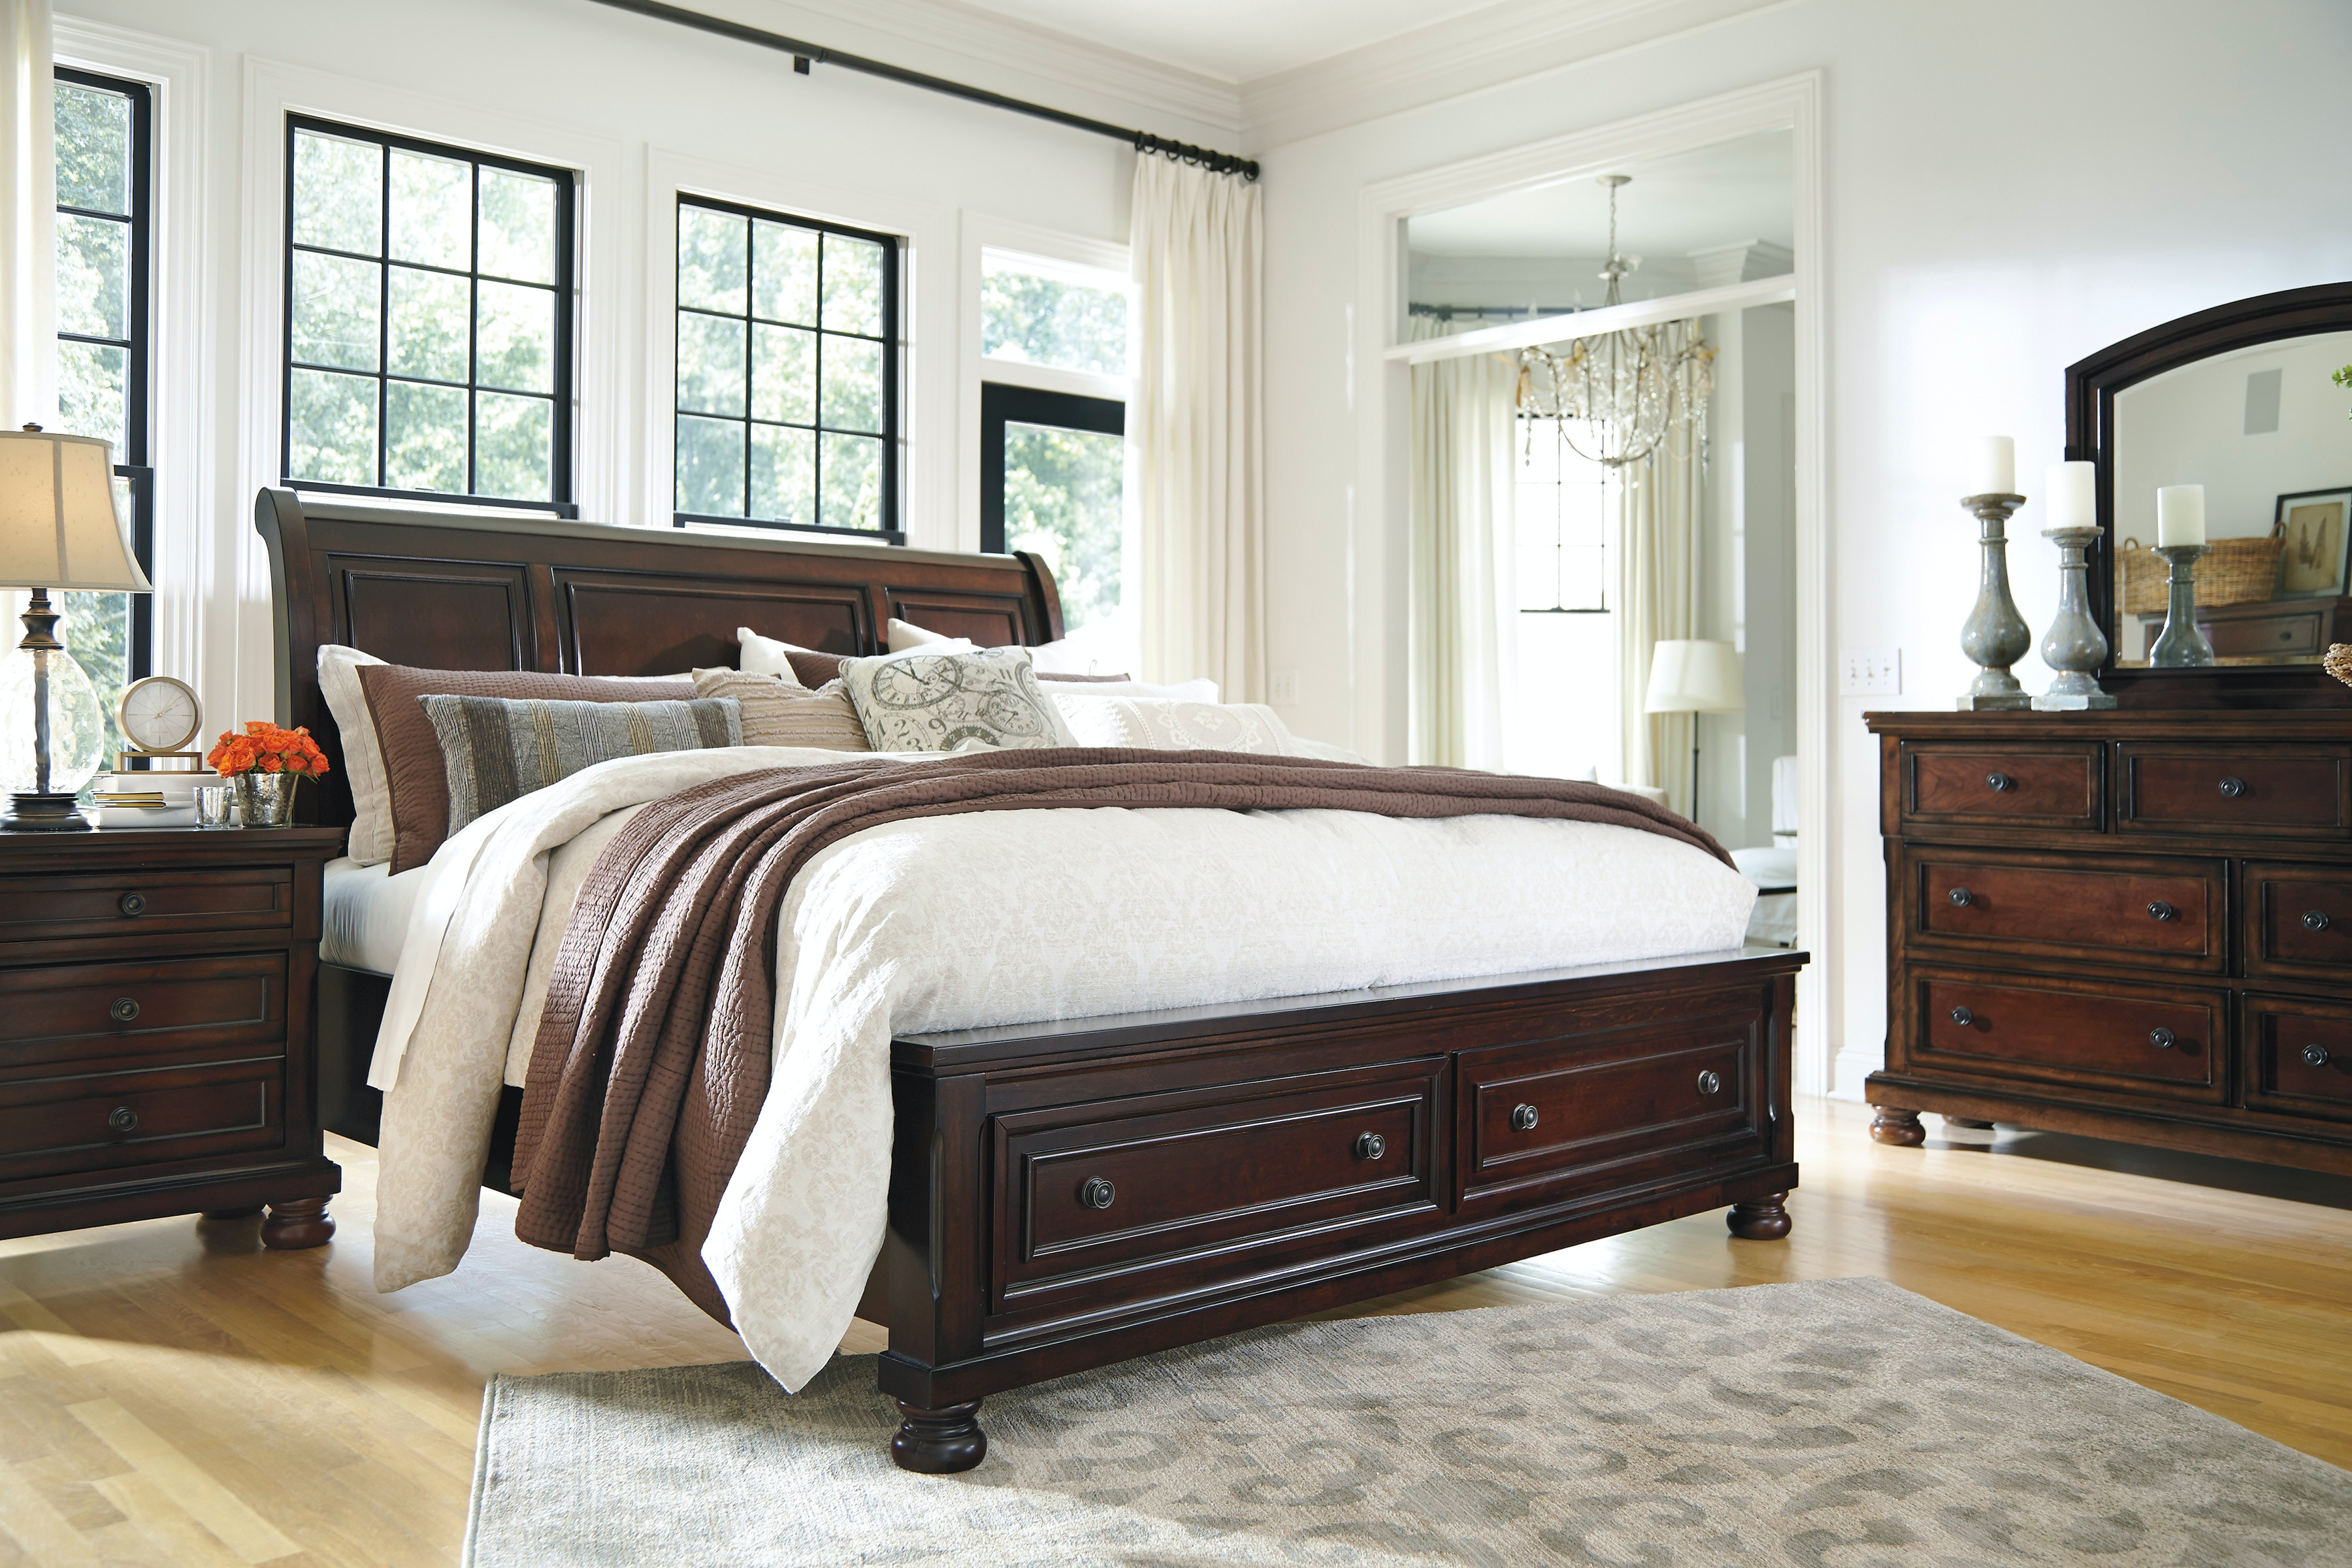 Bedroom Beds Gibson Furniture Andrews NC